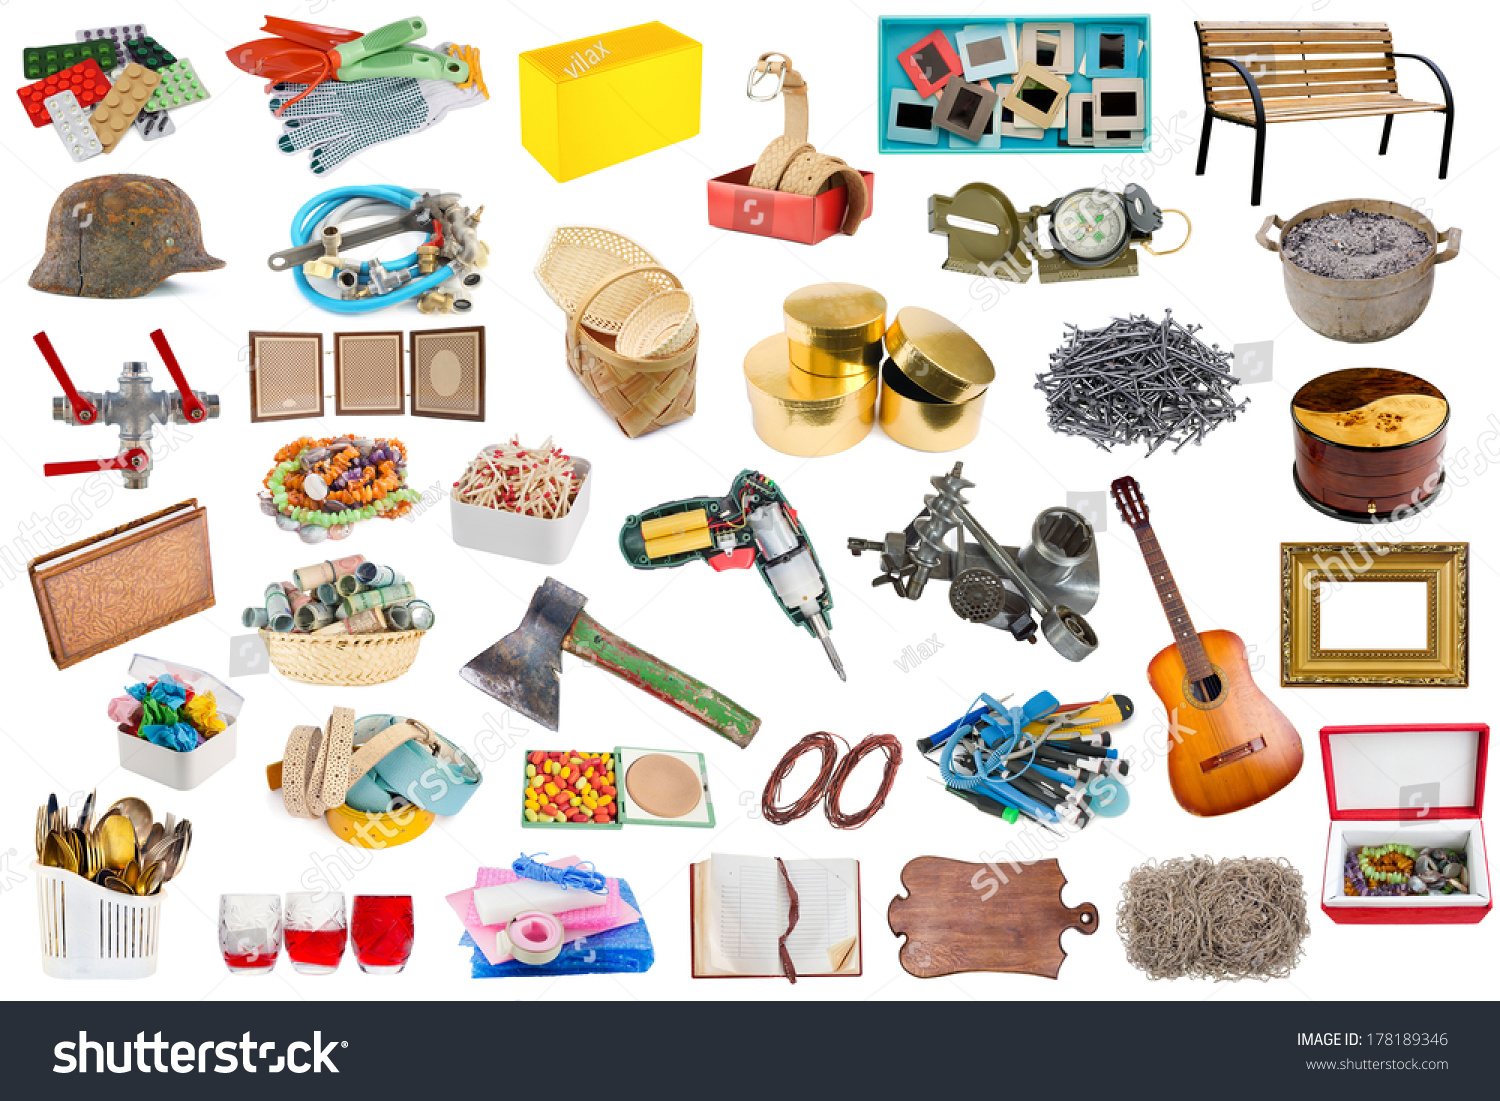 Simple Common Household Objects Tools Isolated Stock Photo